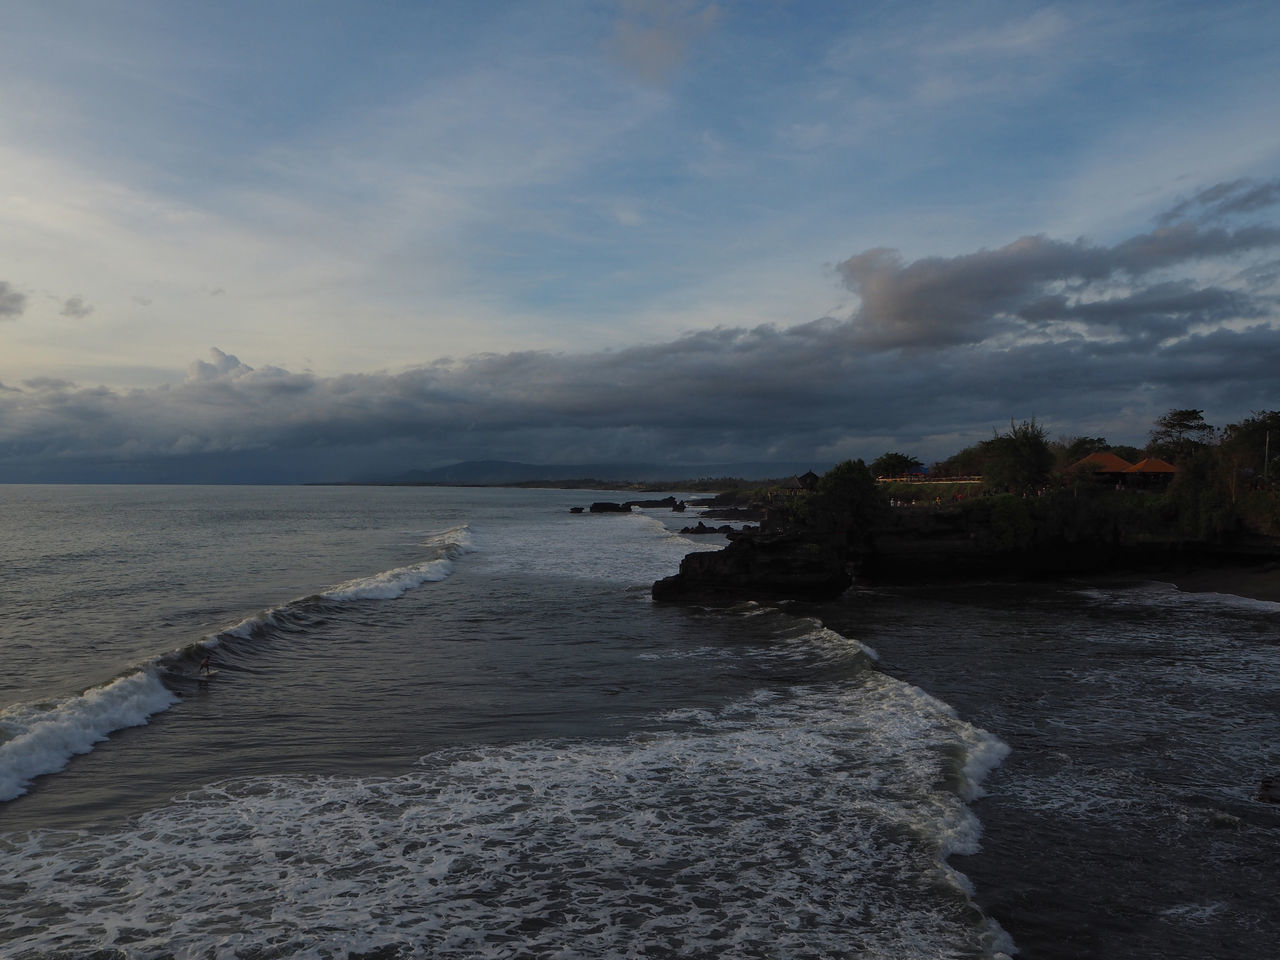 🌊 Tanah Lot 🌊 Travel Wave Surfing Bali Bali, Indonesia Beach Beach Life Beach Time Beauty In Nature Cloud - Sky Exceptional Photographs EyeEmNewHere Landscapes Life Is A Beach Lifestyles Nature Ocean Outdoors Sea Sea View Sky Tadaa Community Tranquility Travel Destinations